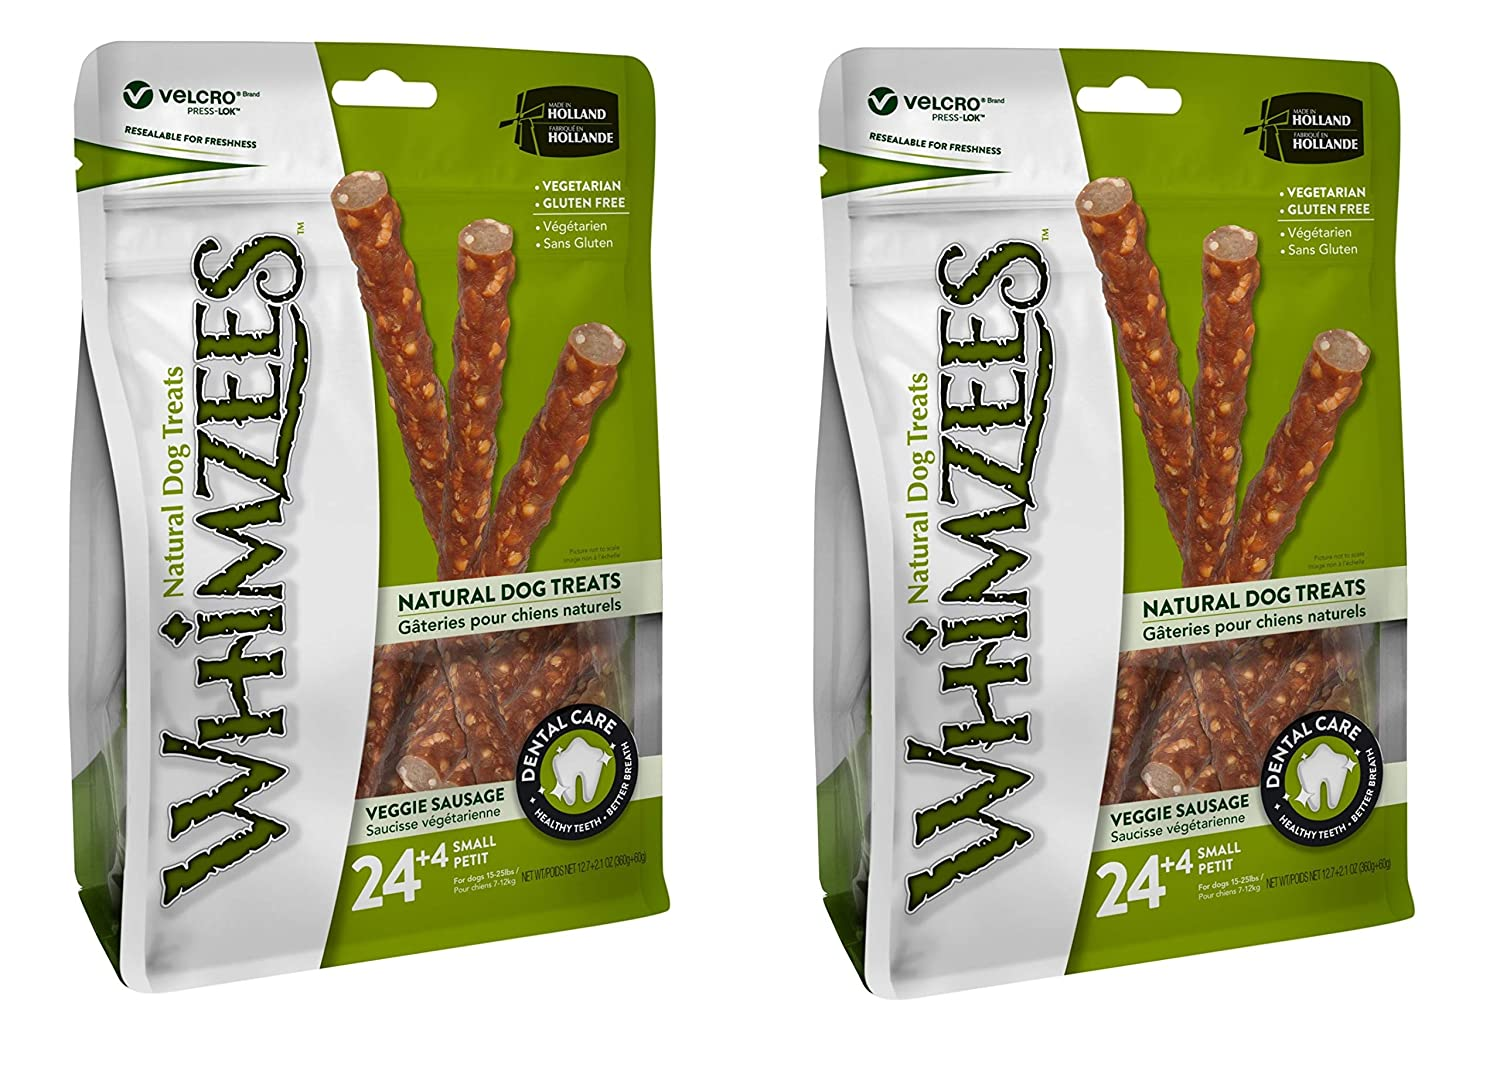 Whimzees 2 Pack of Small Veggie Sausage Dog Dental Chews, 28 Treats Each